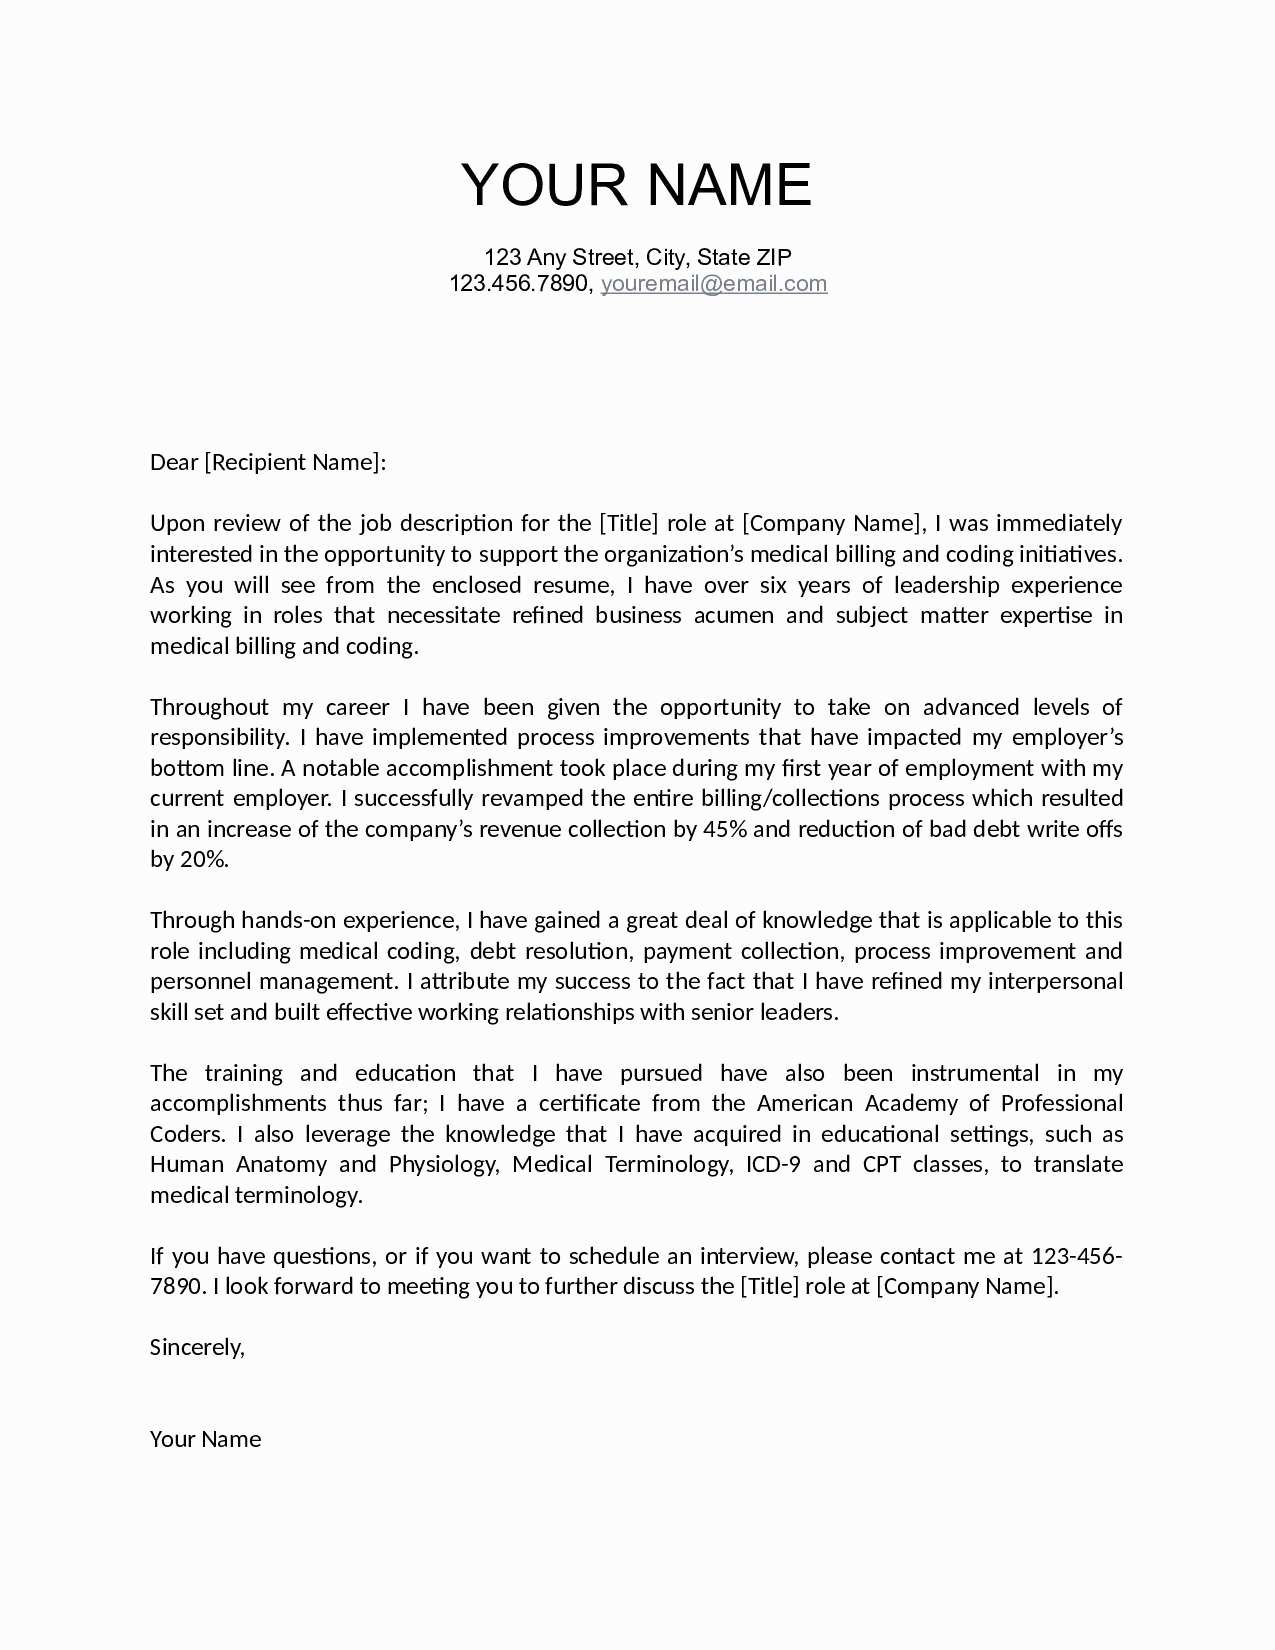 Sales associate Cover Letter Template - Email Template to Schedule A Meeting New Job Fer Letter Template Us